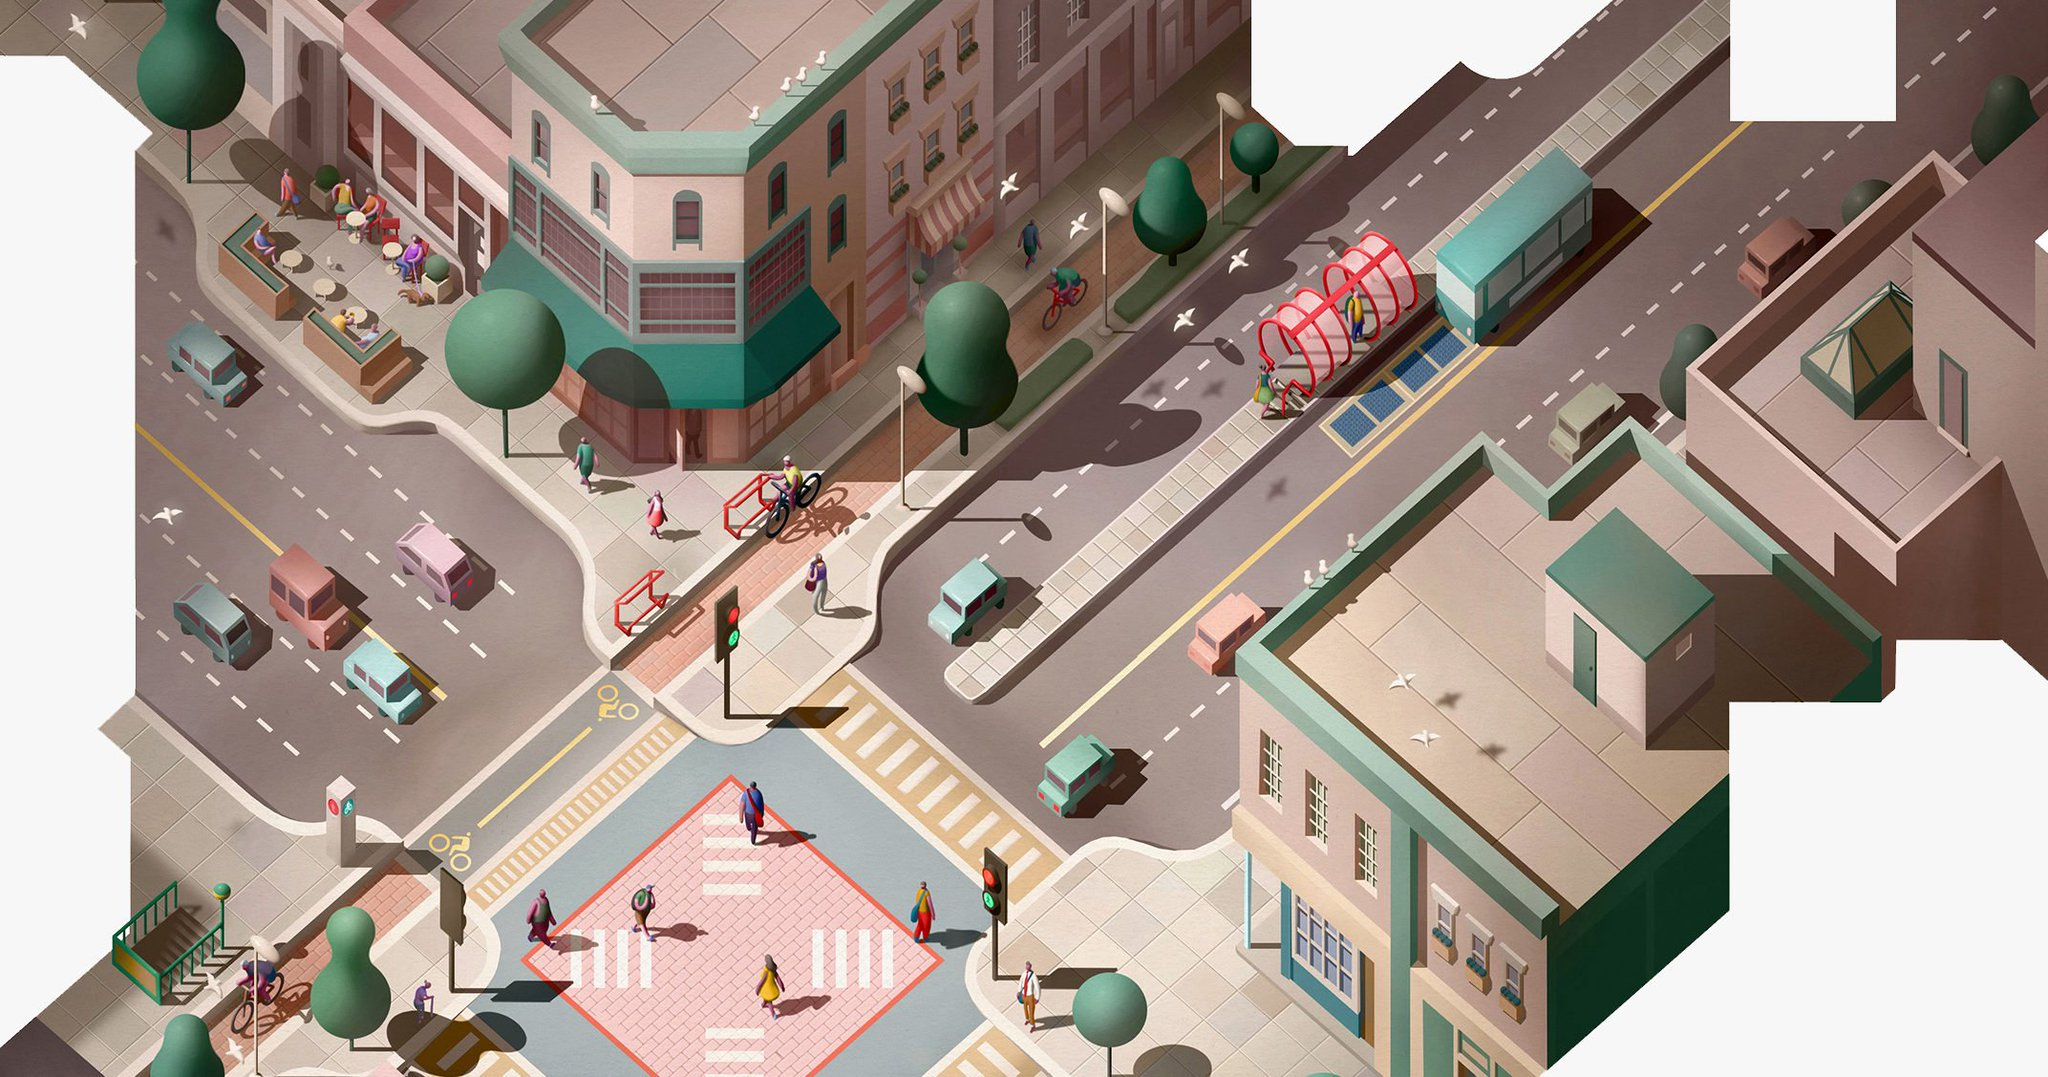 16 ways to design better intersections—and better cities: https://t.co/MmQ7hCenID https://t.co/hYE3Y56Gid